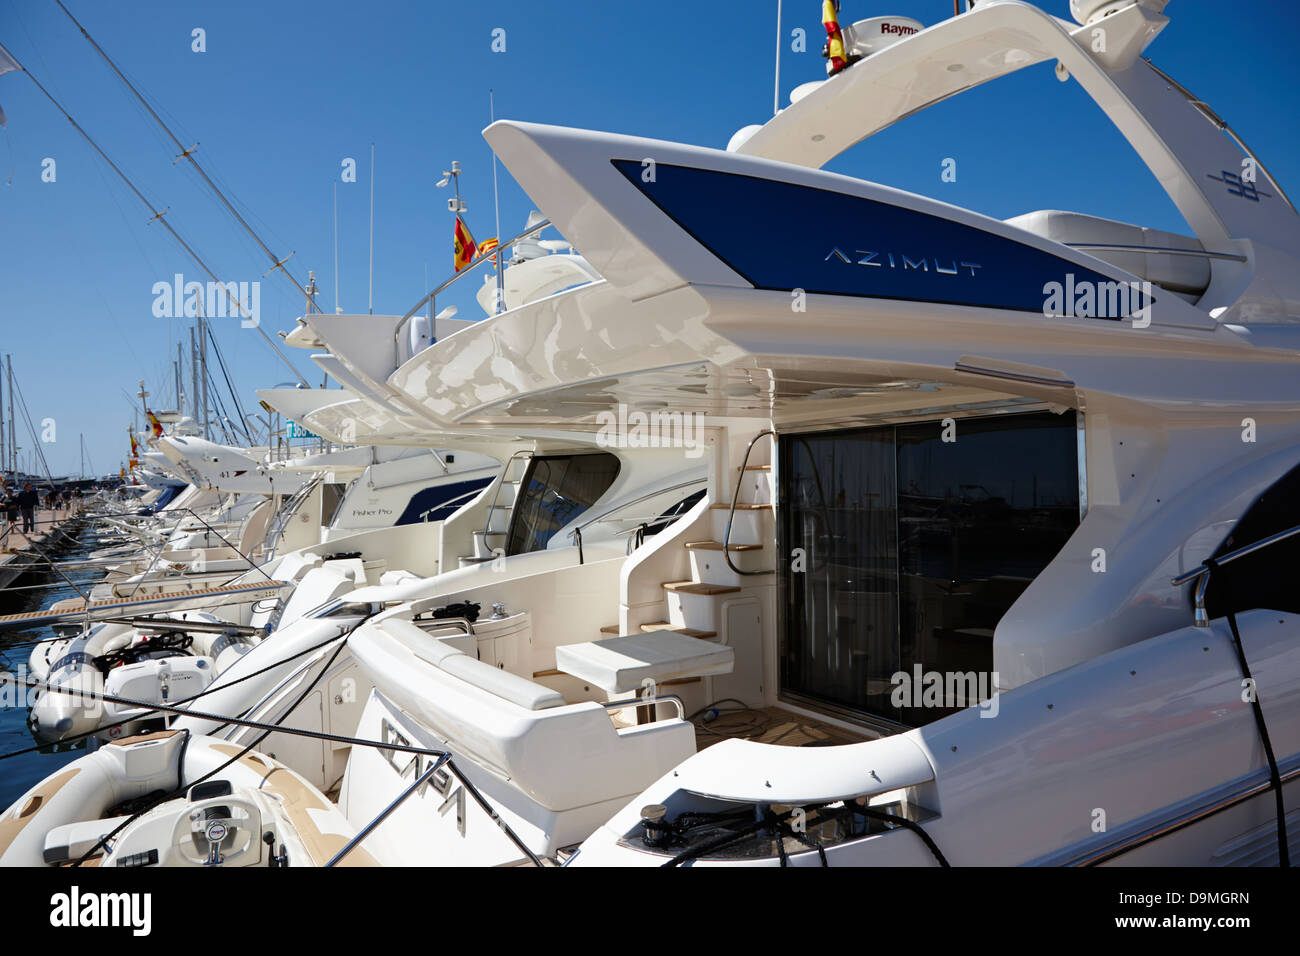 yachts and powerboats in the port marina Cambrils Catalonia Spain - Stock Image